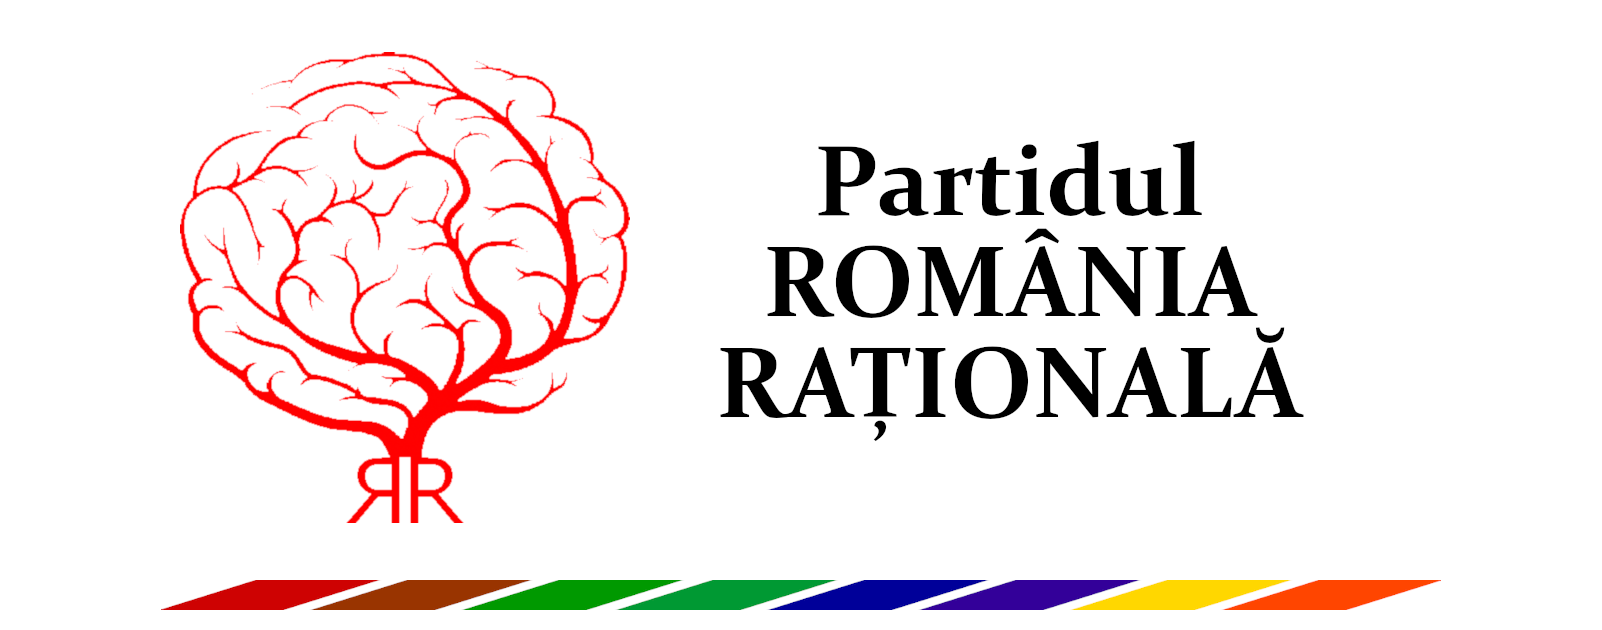 https://ziarul.romania-rationala.ro/control/articole/articole/partidul-romania-rationala-cover-1602x630.png